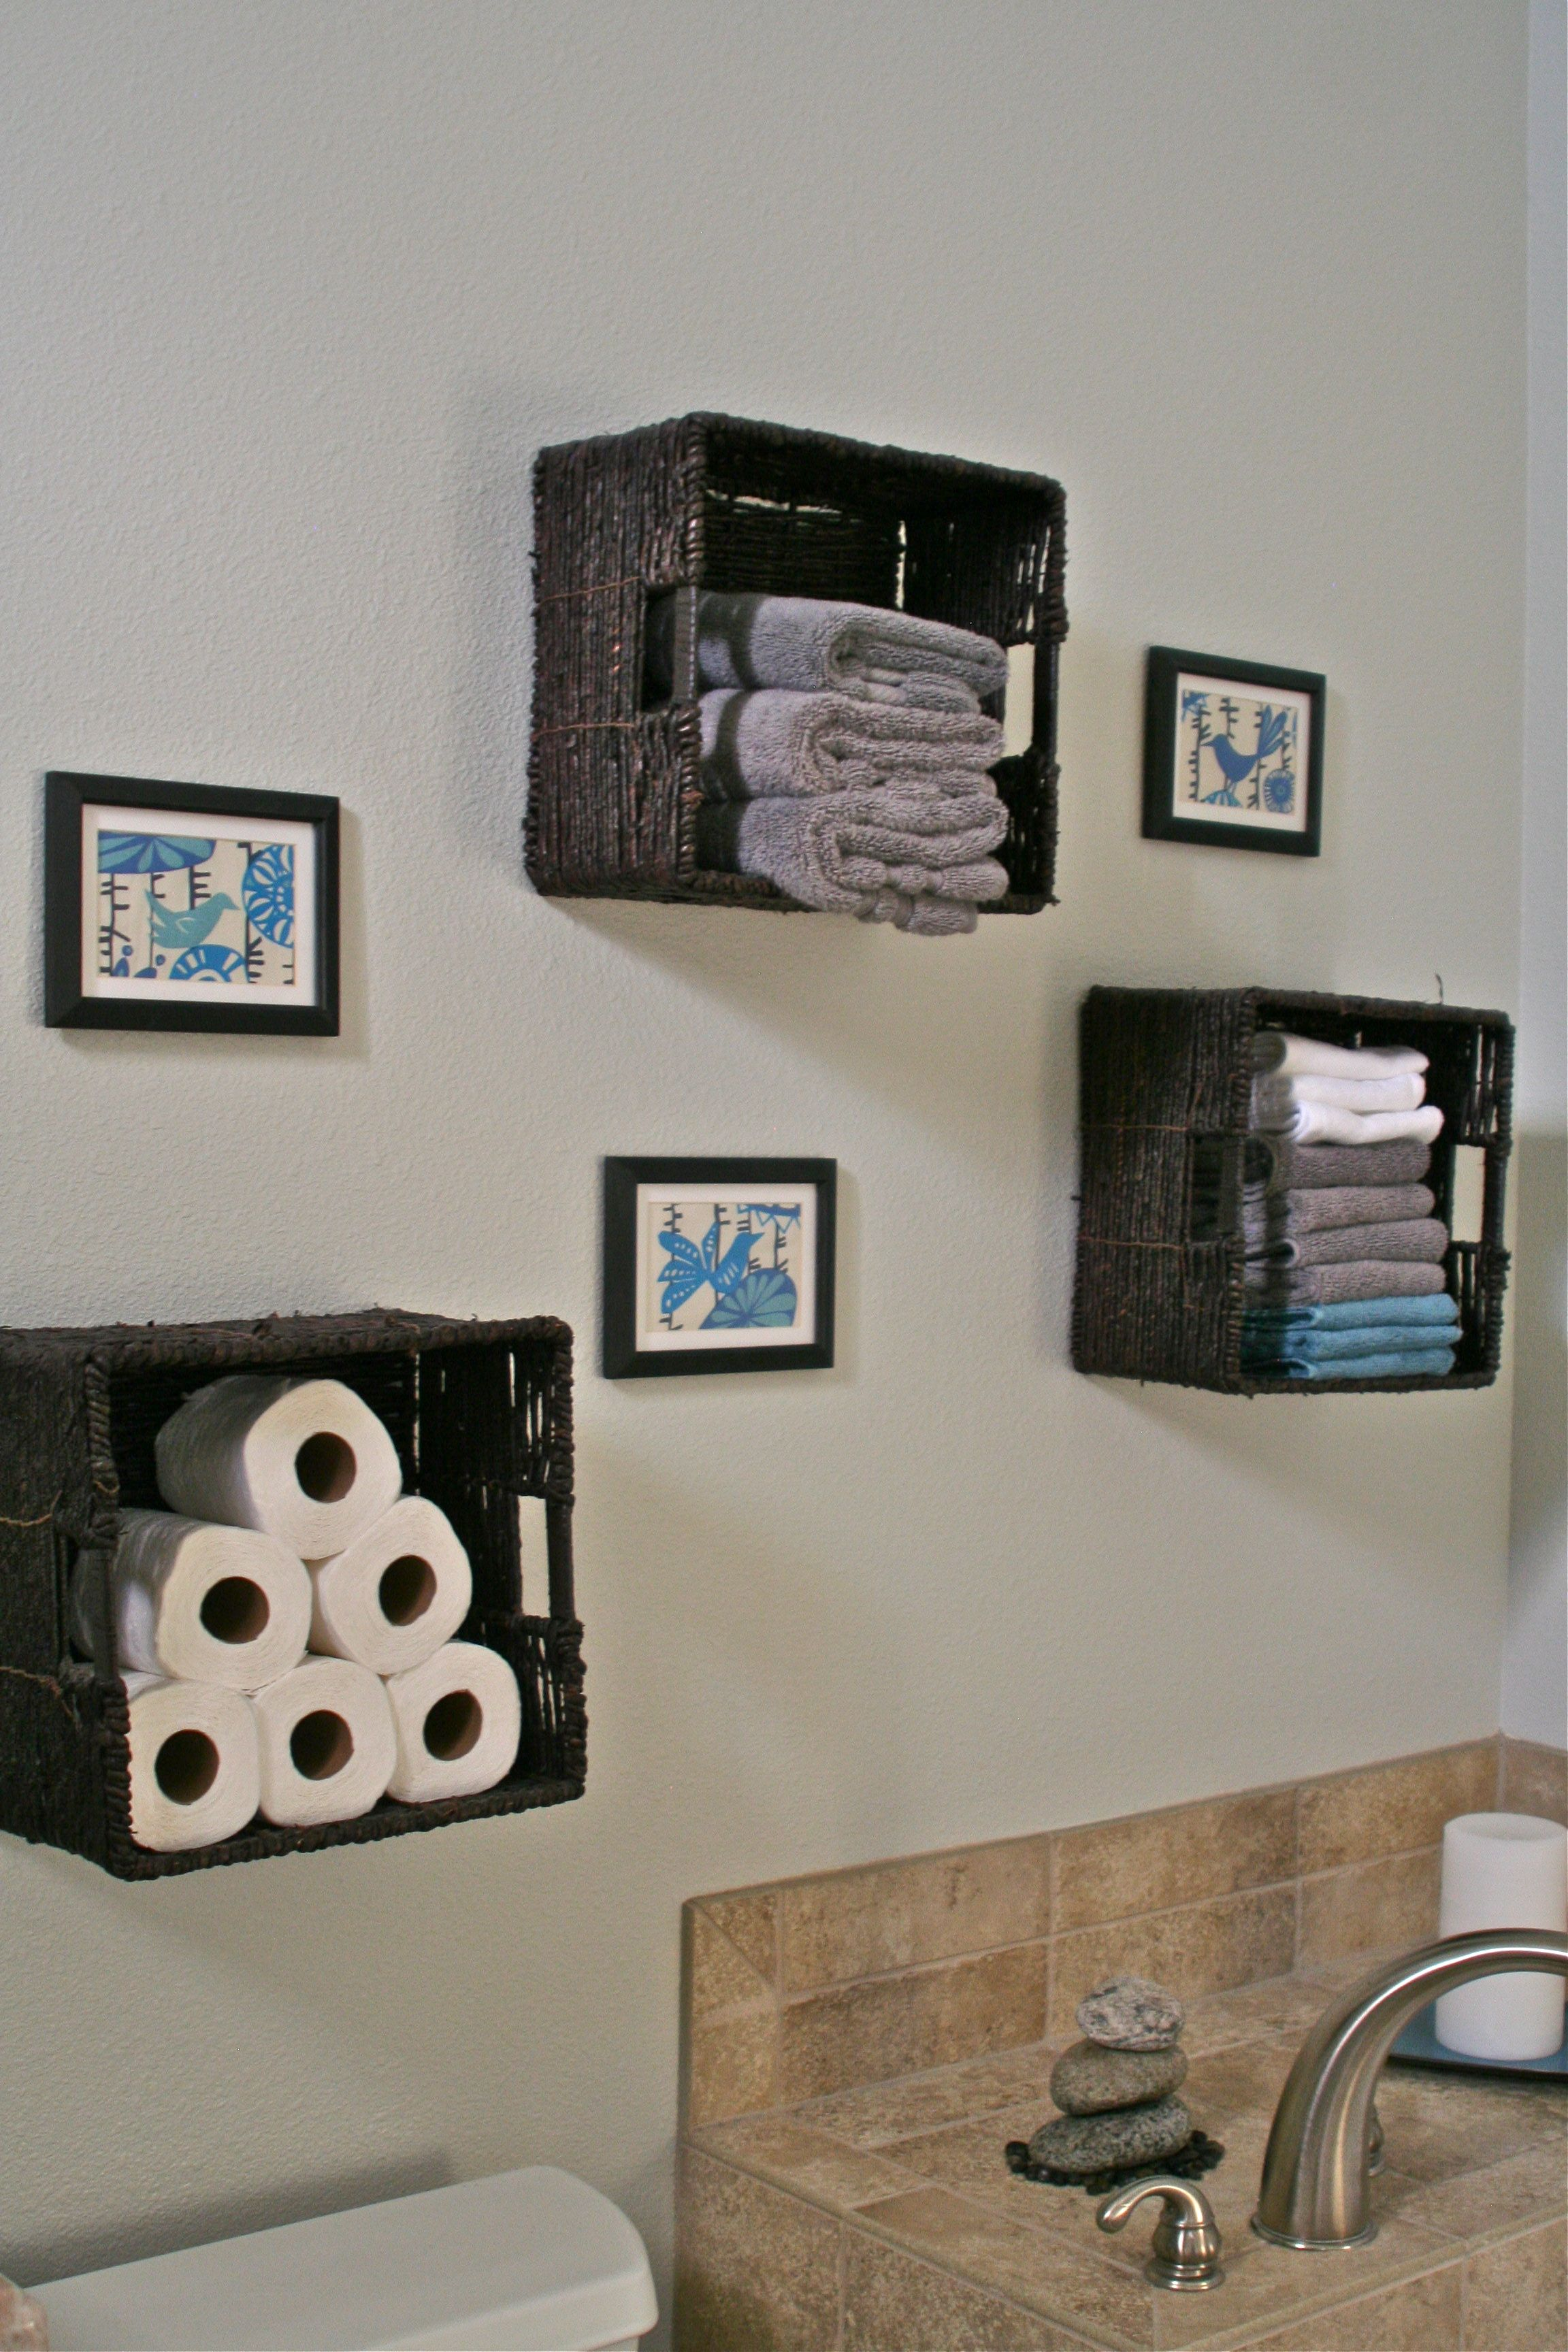 Diy Wall Art And Bathroom Update Bathroom Basket Storage Bathroom Storage Organization Bathroom Wall Decor